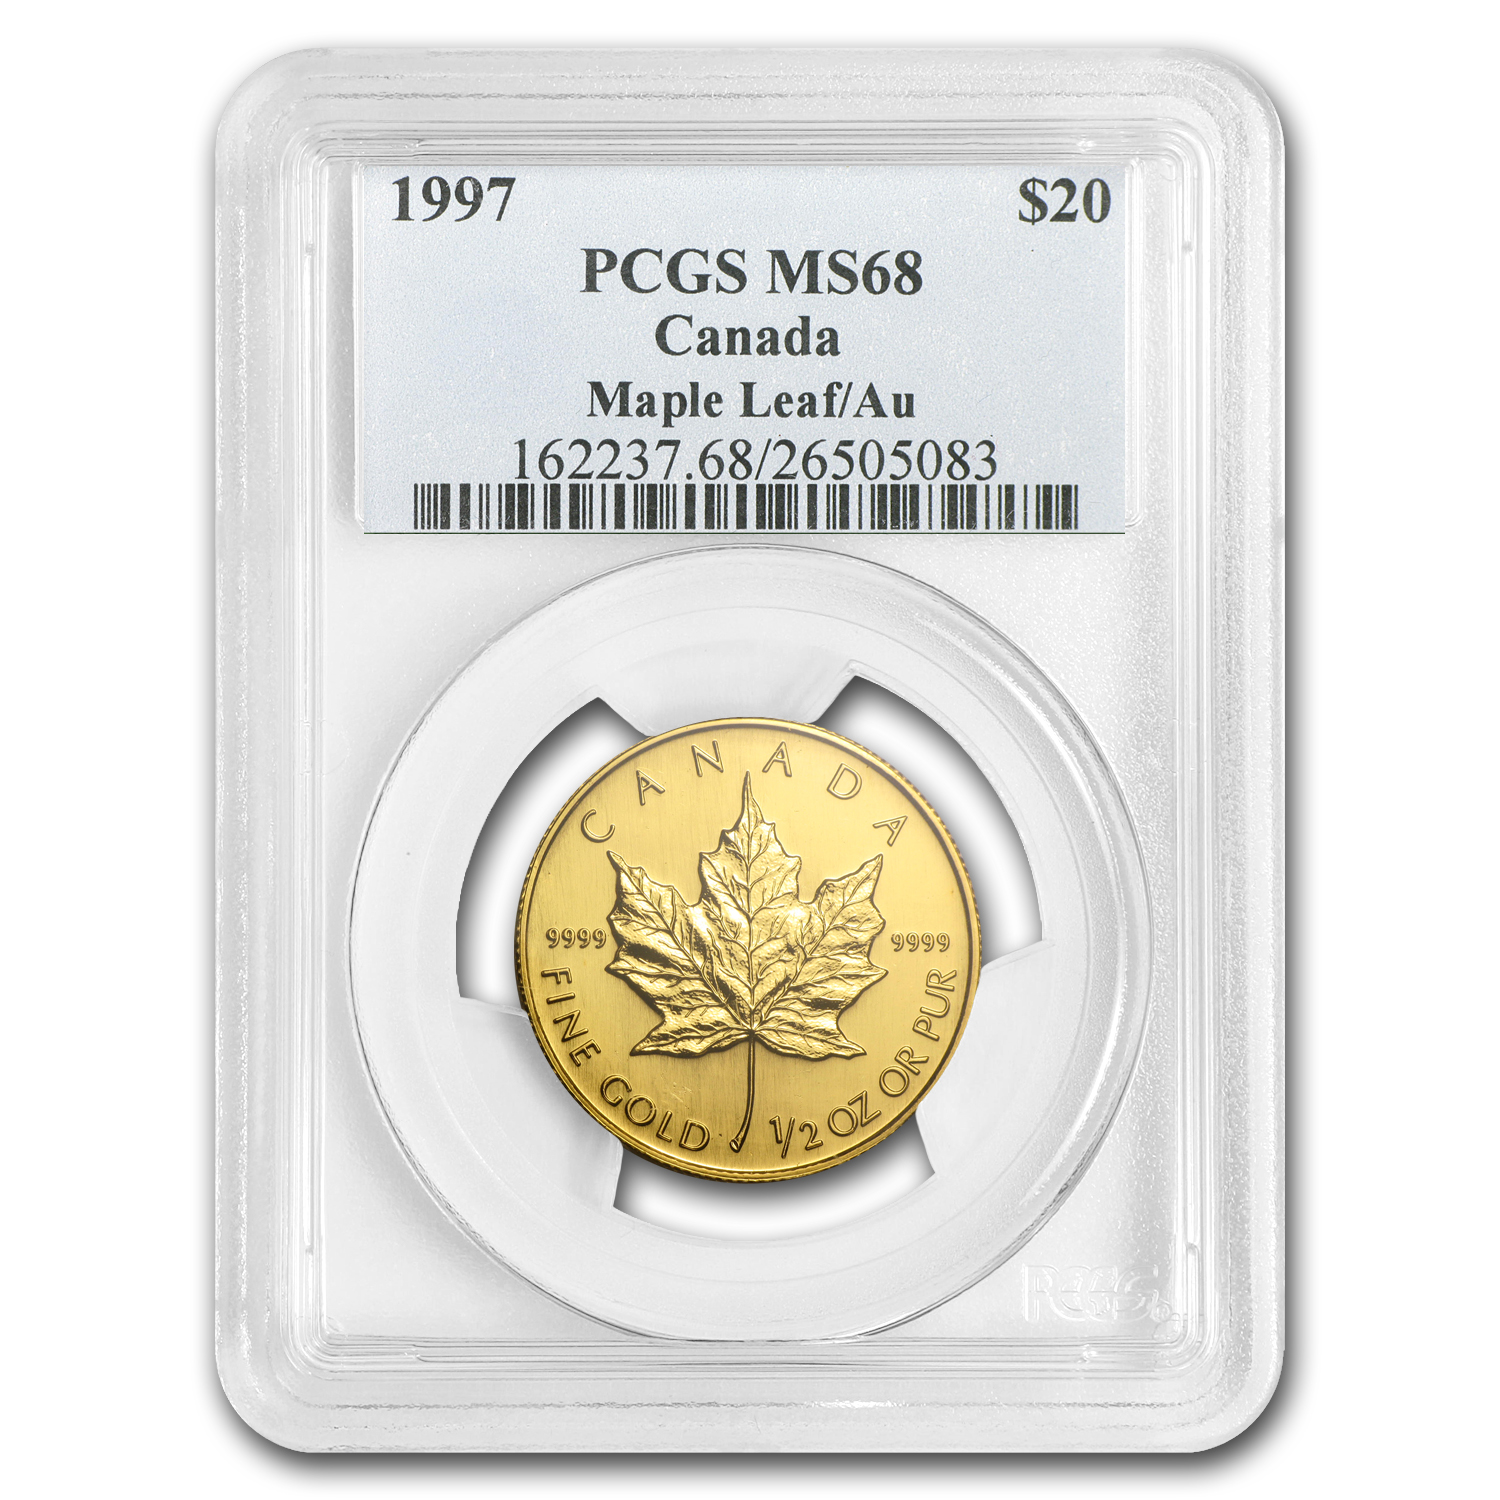 1997 Canada 1/2 oz Gold Maple Leaf MS-68 PCGS